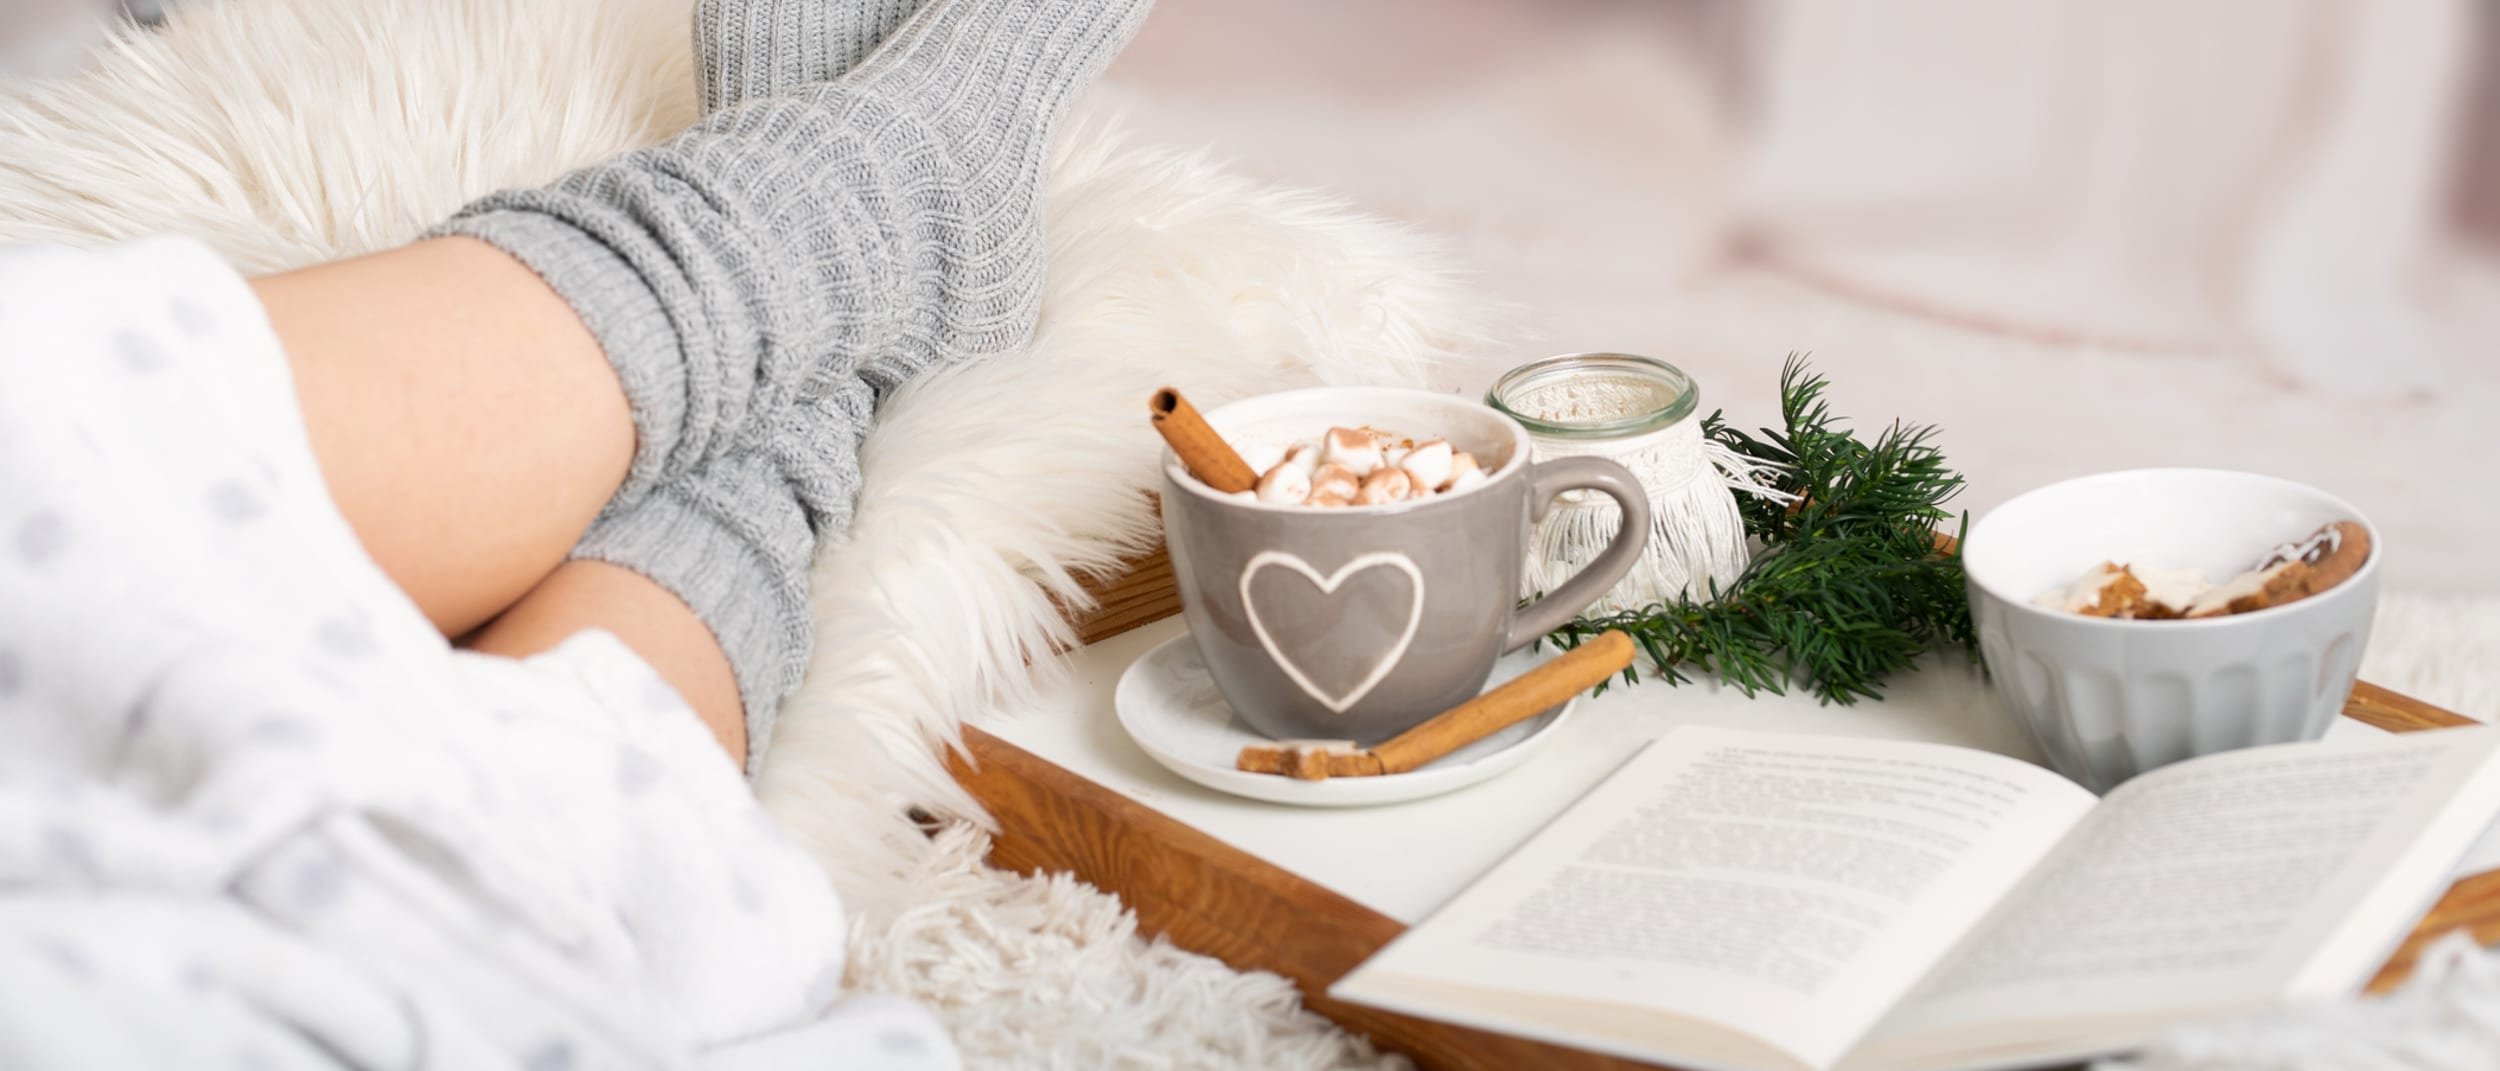 7 winter essentials to get your home cosy for the chilly season